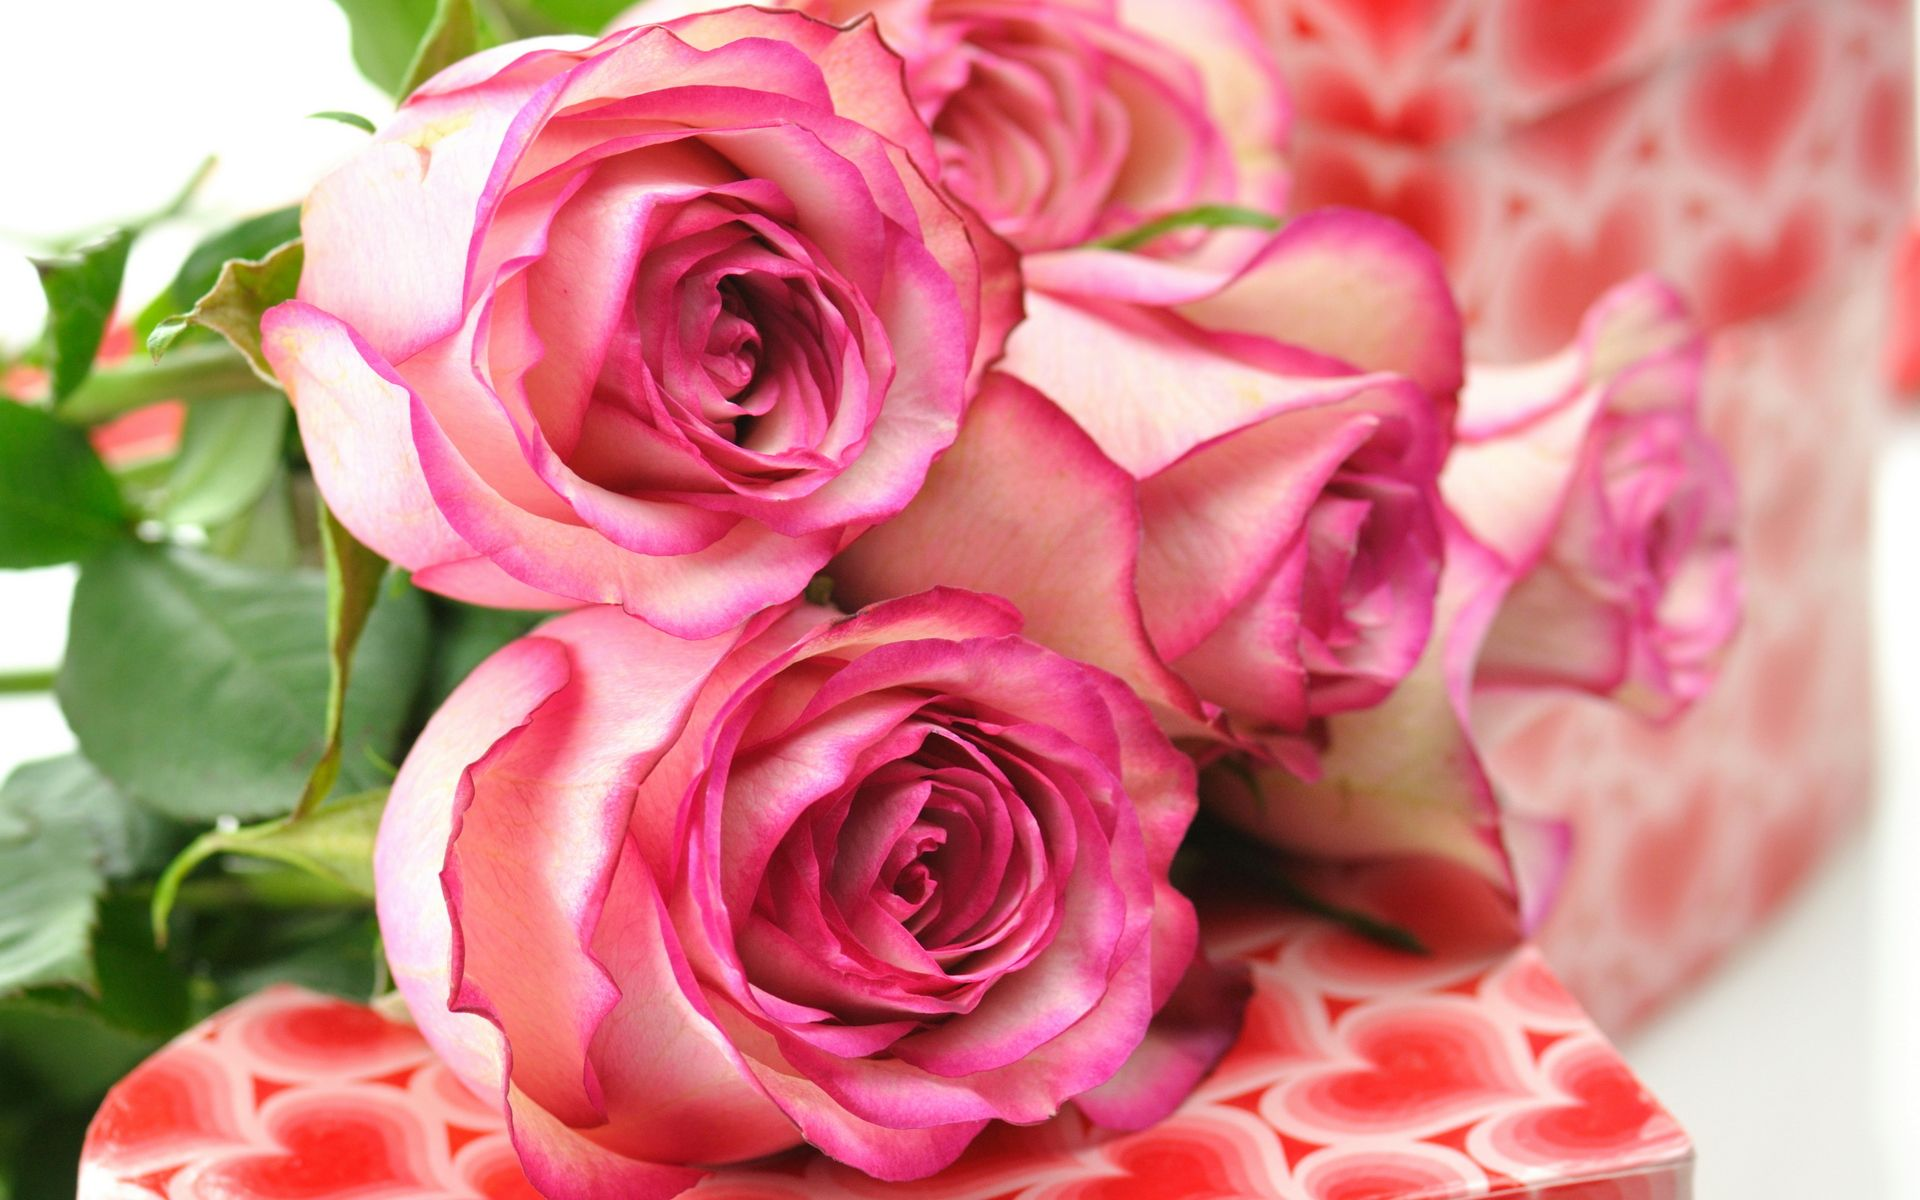 Beautiful rose images and wallpapers 4